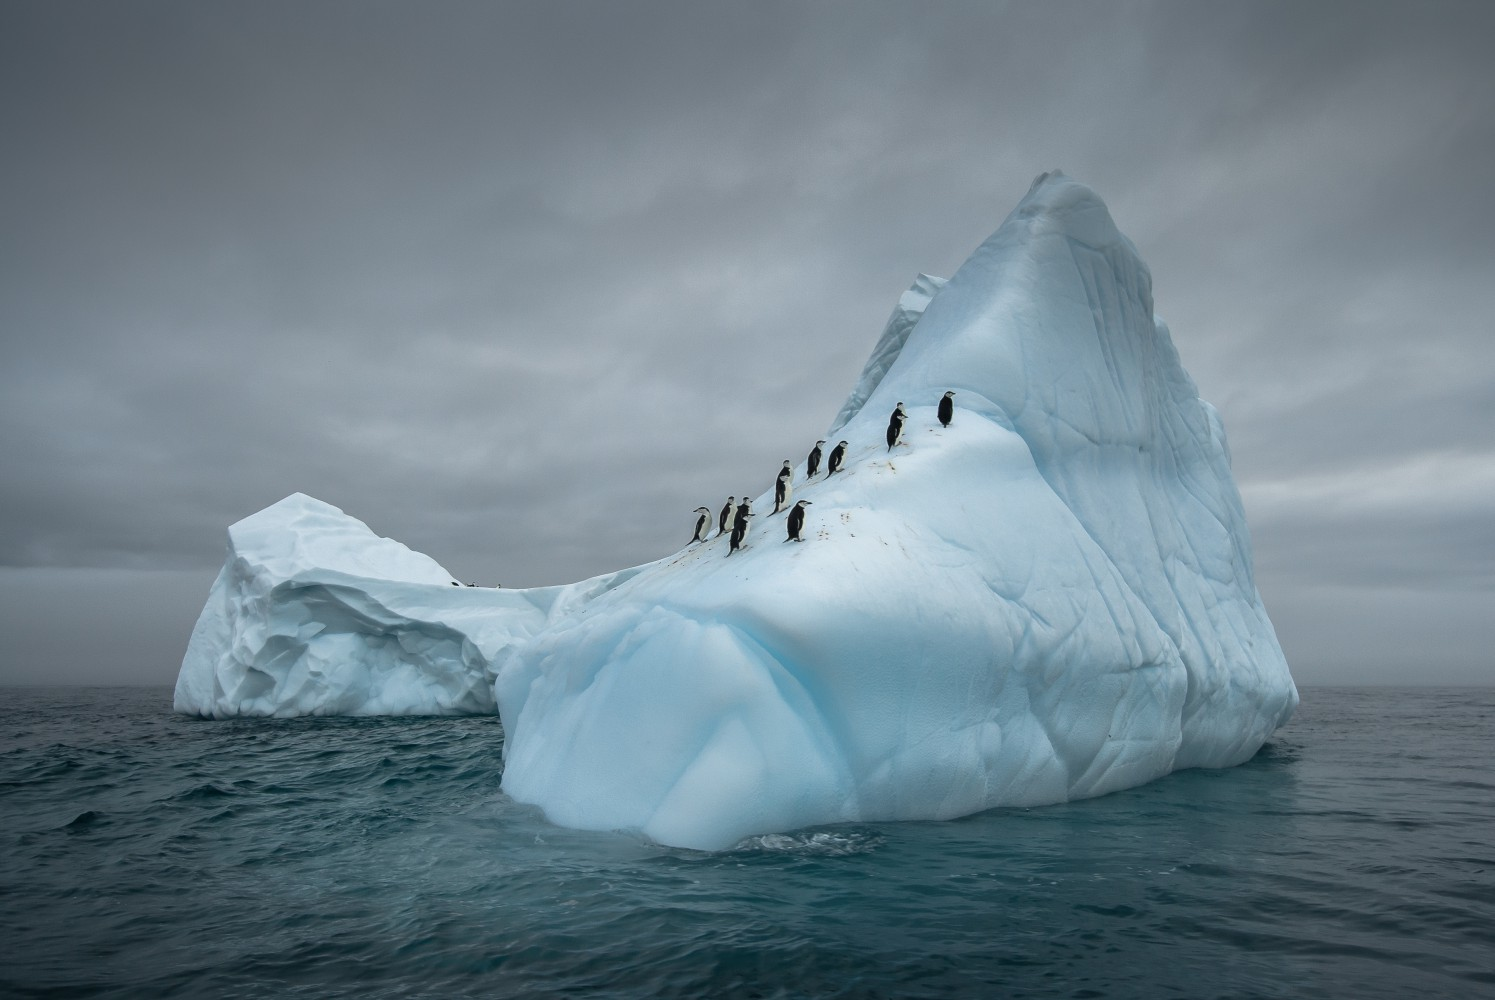 Antarctica: The Coldest Continent